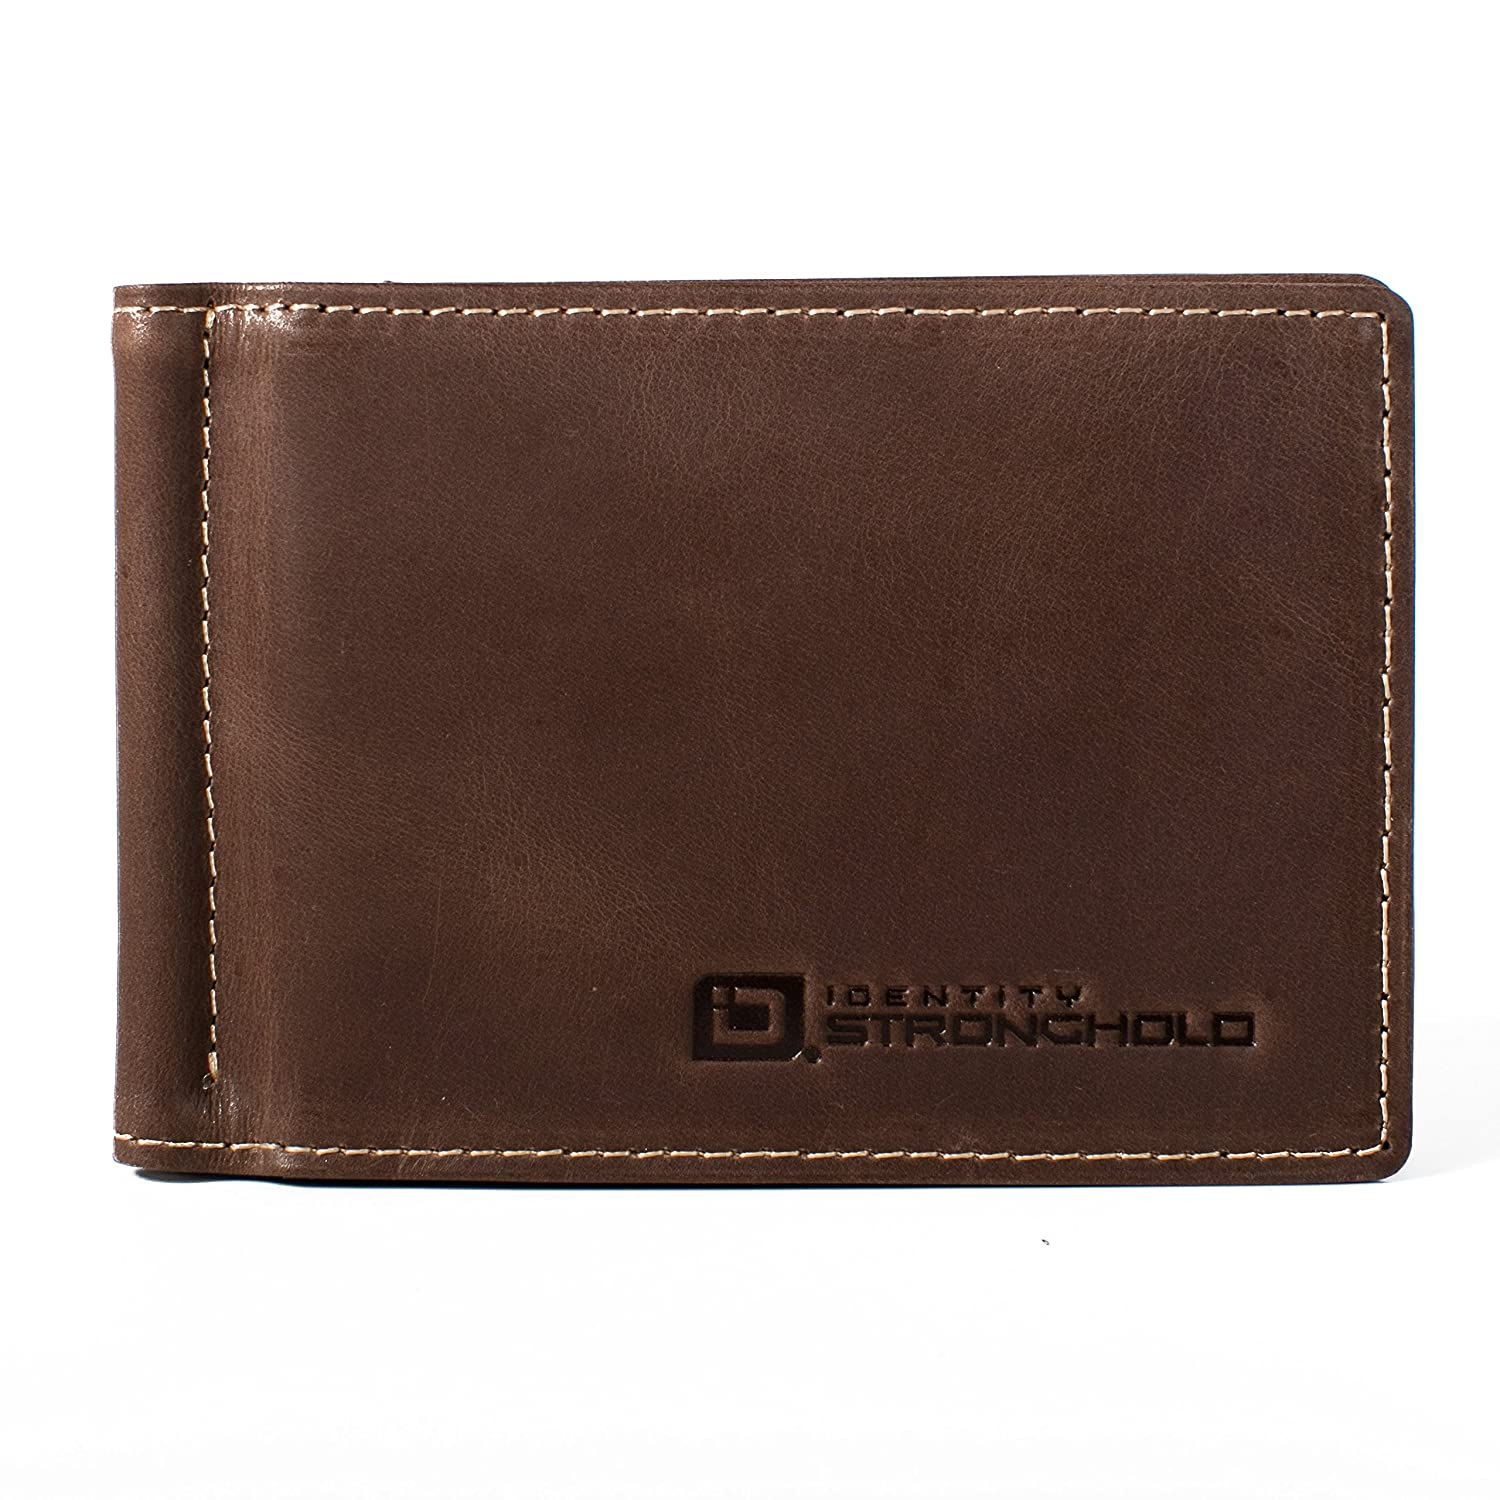 Brown Minimalist Wallet Protective Wallets for Men RFID Money Clip with ID RFID Wallets with Excellent Quality Leather